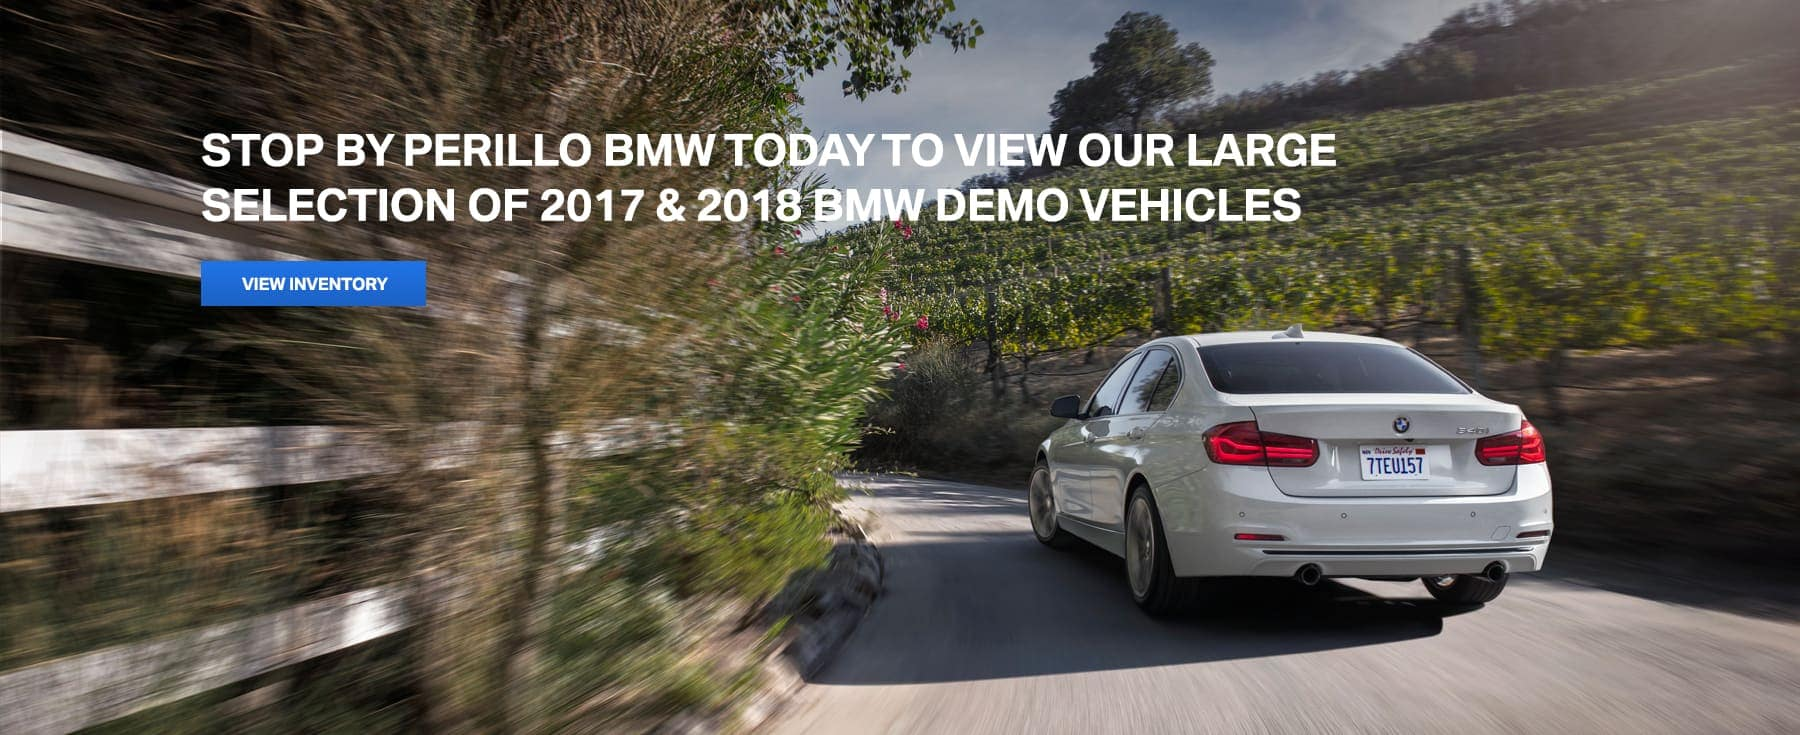 2017 & 2018 BMW Demo Vehicles